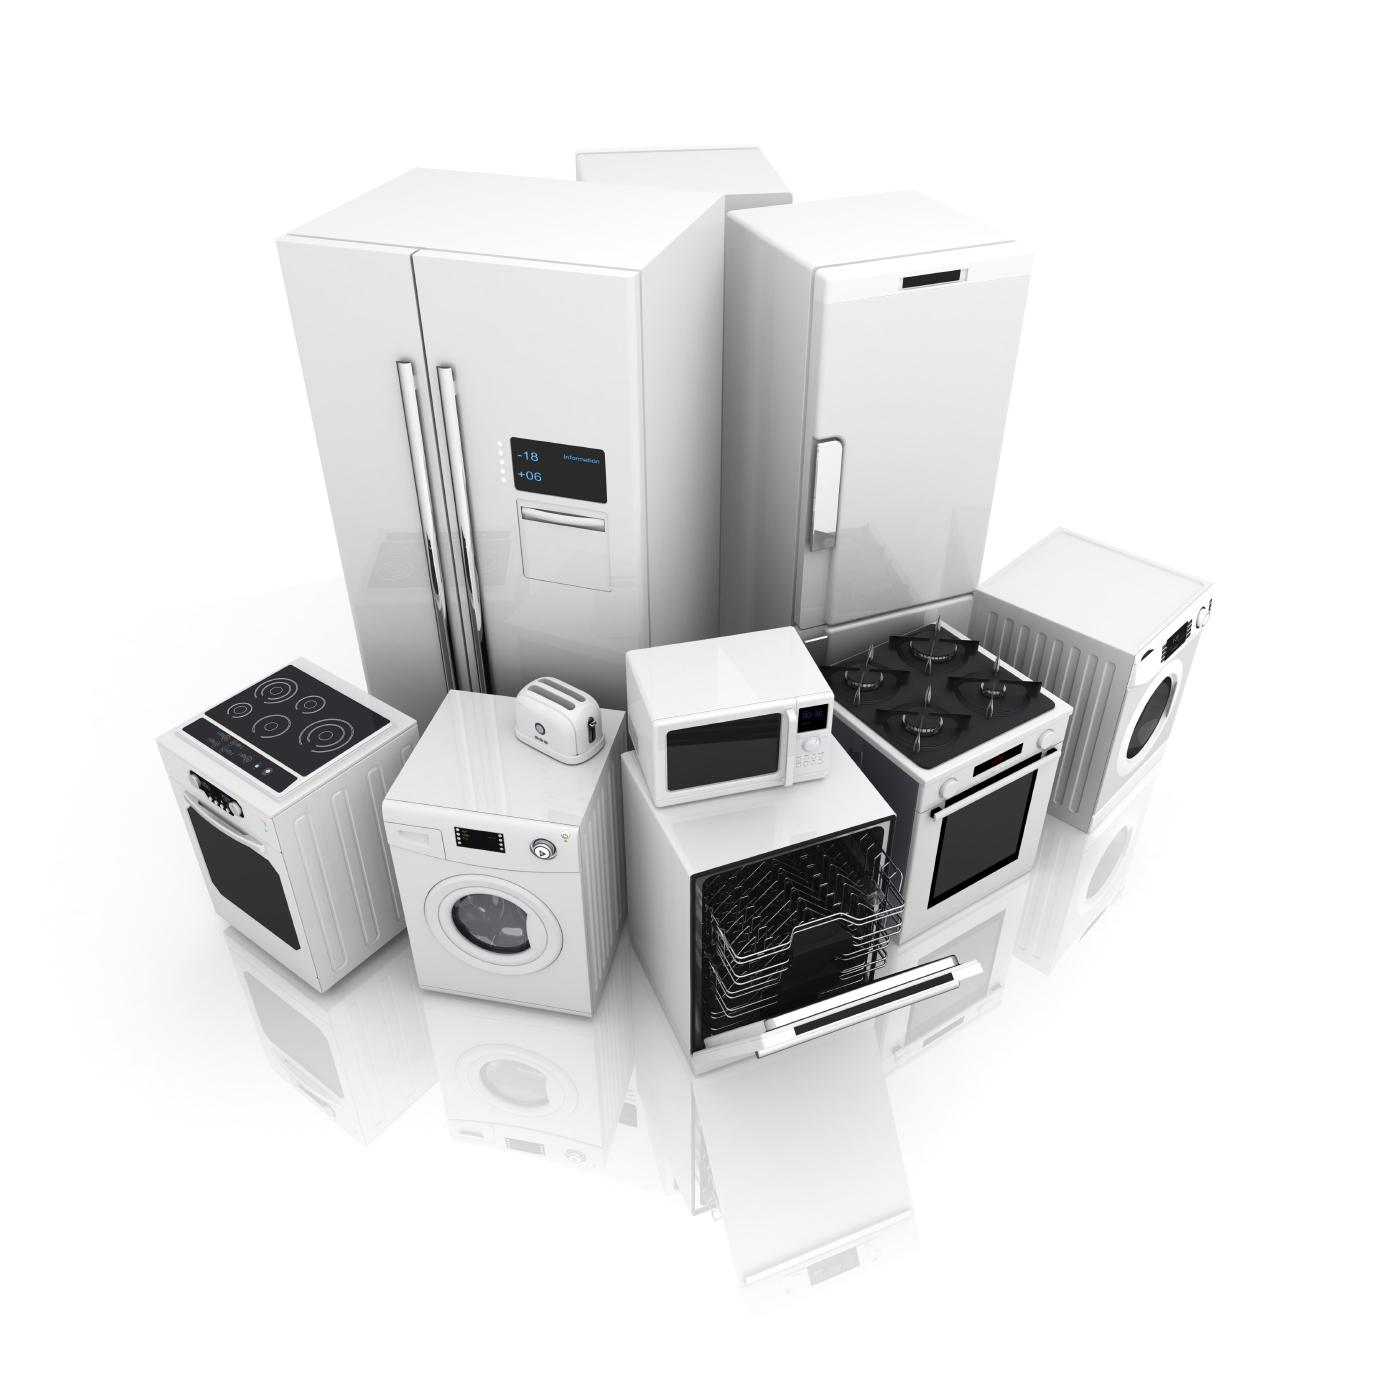 Washing Machine Repair At Your Doorsteps And Any Other Electronic Properties Nairaland